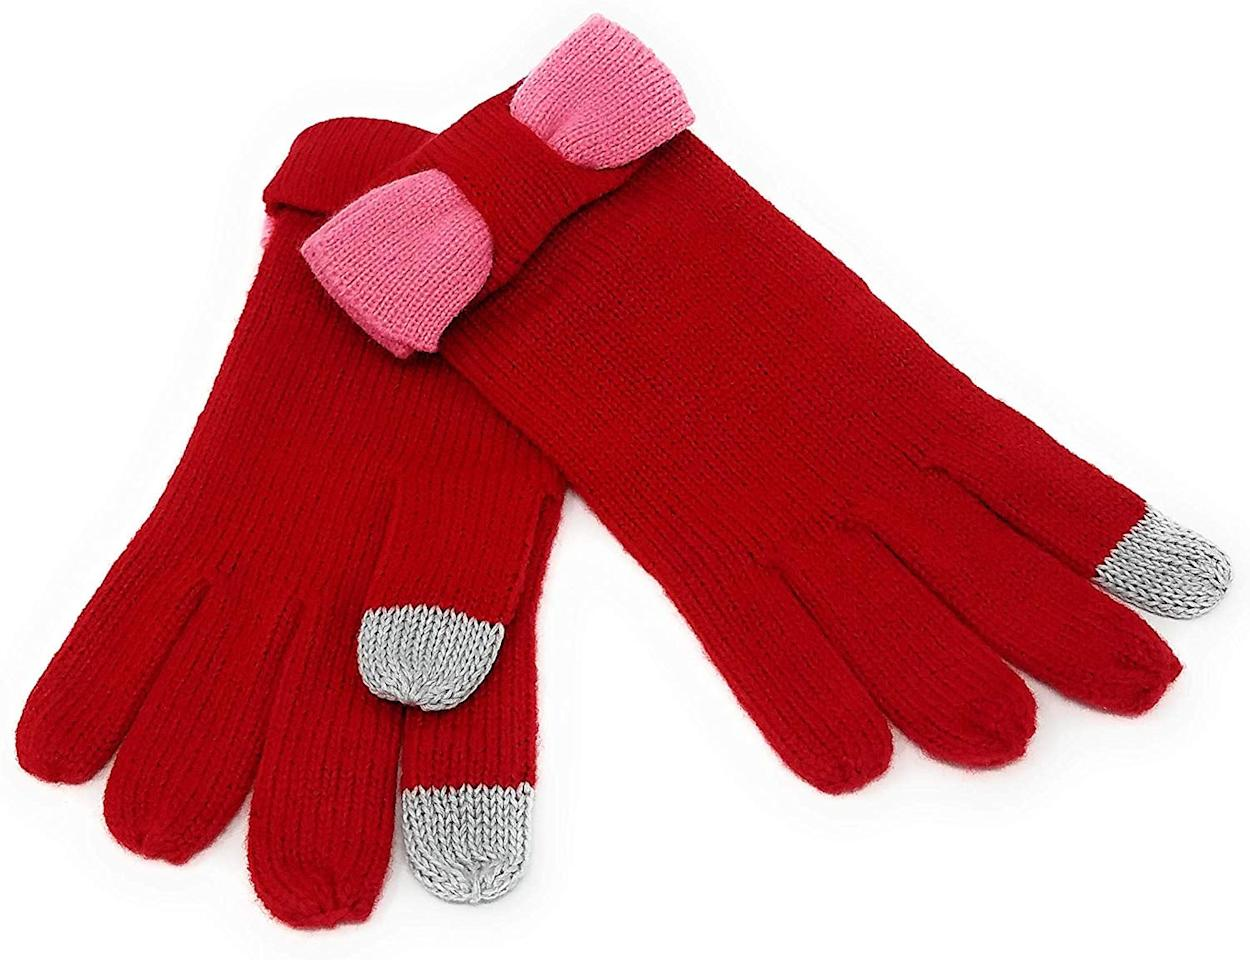 """<p>How sweet are these <a href=""""https://www.popsugar.com/buy/Kate-Spade-Tech-Friendly-Colorblock-Gloves-505266?p_name=Kate%20Spade%20Tech-Friendly%20Colorblock%20Gloves&retailer=amazon.com&pid=505266&price=29&evar1=fab%3Aus&evar9=45460850&evar98=https%3A%2F%2Fwww.popsugar.com%2Fphoto-gallery%2F45460850%2Fimage%2F46927707%2FKate-Spade-Tech-Friendly-Colorblock-Gloves&list1=shopping%2Cgifts%2Camazon%2Choliday%2Cchristmas%2Cgift%20guide%2Cfashion%20gifts%2Cgifts%20for%20women&prop13=api&pdata=1"""" rel=""""nofollow"""" data-shoppable-link=""""1"""" target=""""_blank"""" class=""""ga-track"""" data-ga-category=""""Related"""" data-ga-label=""""https://www.amazon.com/Kate-Spade-Tech-Friendly-Colorblock-Gloves/dp/B07KSTHNR7/ref=sr_1_1?crid=2ZBZNYUEV4RRS&amp;dchild=1&amp;keywords=kate+spade&amp;psc=1&amp;qid=1571764905&amp;rnid=2474936011&amp;s=apparel&amp;sprefix=kate+spa%2Caps%2C206&amp;sr=1-1"""" data-ga-action=""""In-Line Links"""">Kate Spade Tech-Friendly Colorblock Gloves</a> ($29)?</p>"""